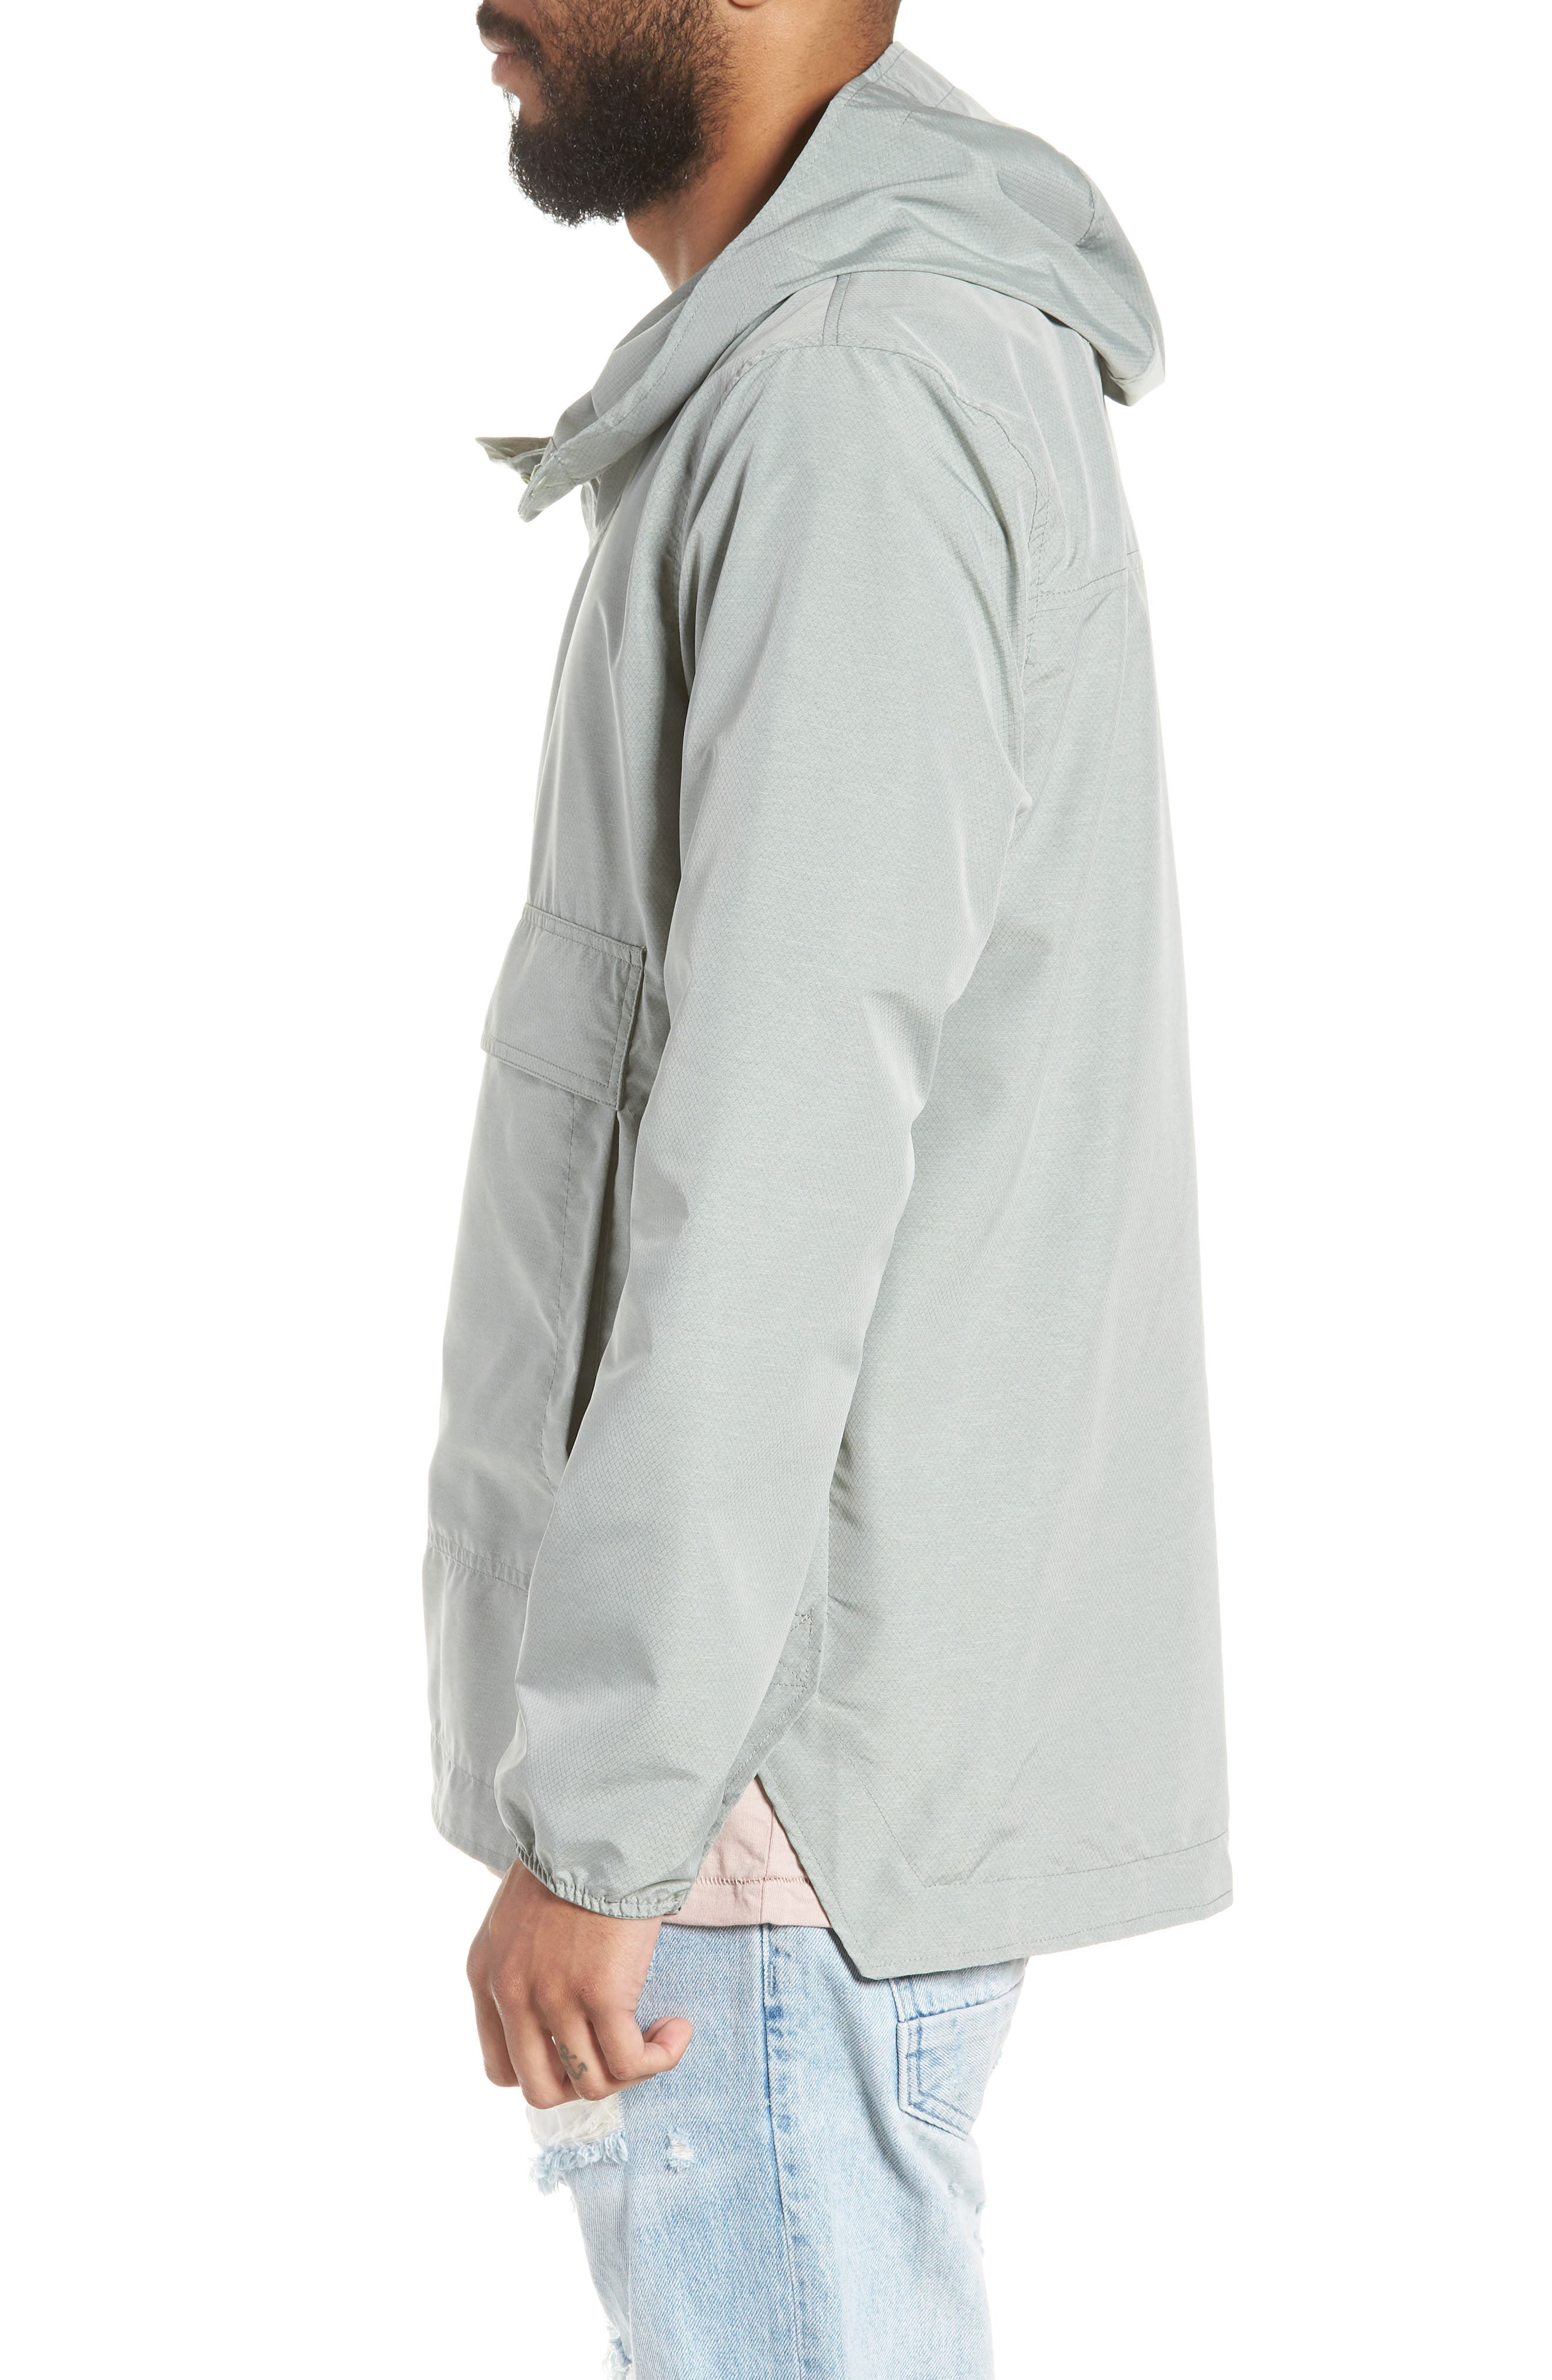 Voyage Anorak,                             Alternate thumbnail 3, color,                             Shadow Crosshatch / Black